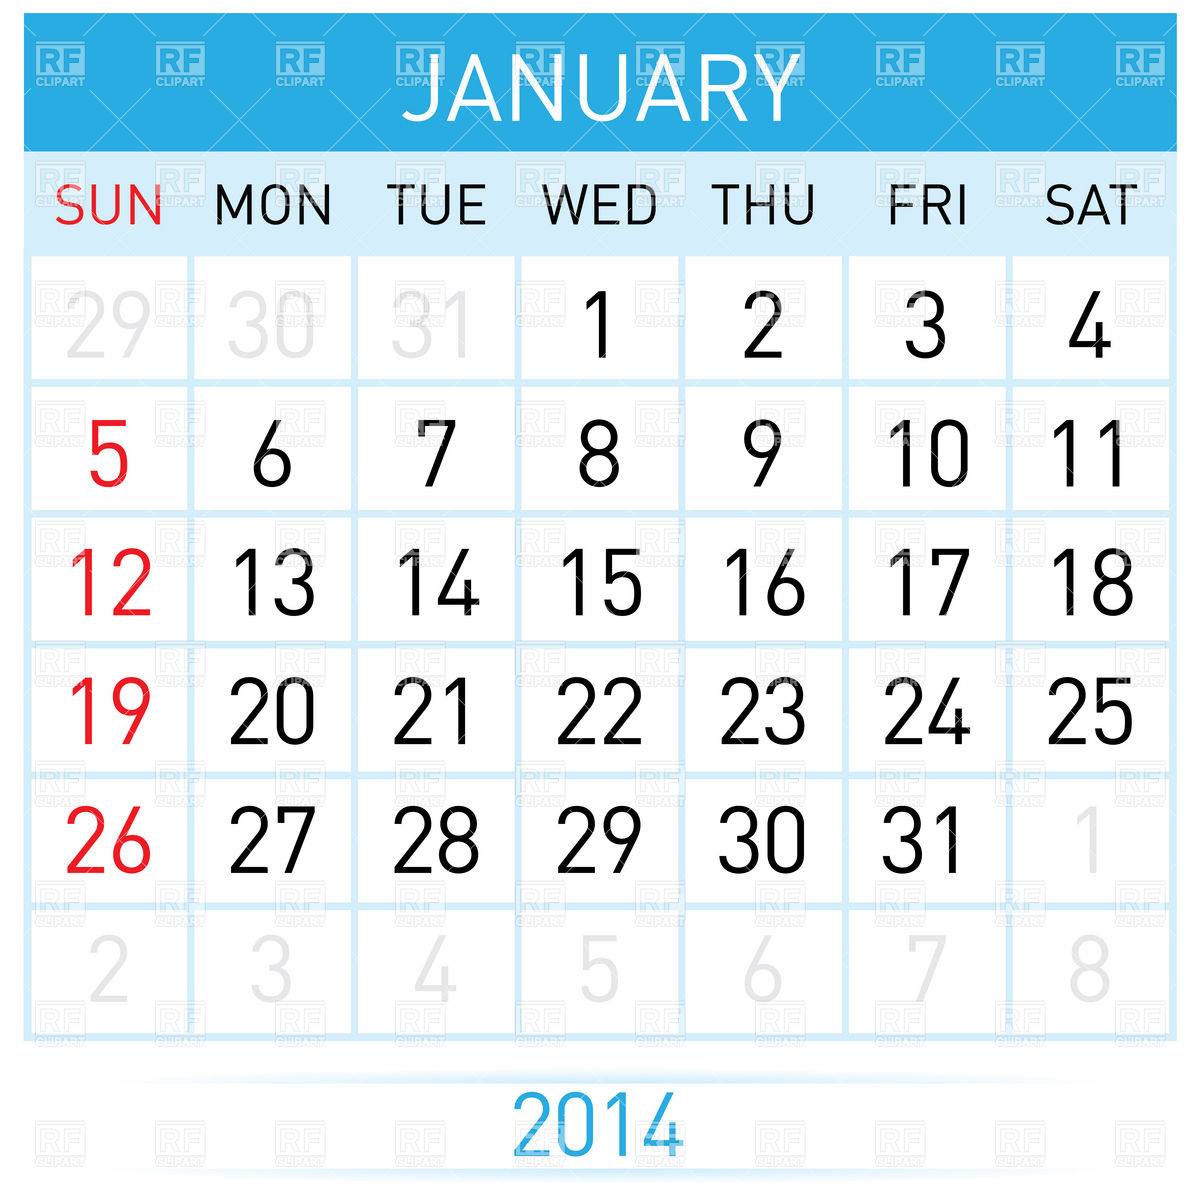 January 2014 month calendar Stock Vector Image.